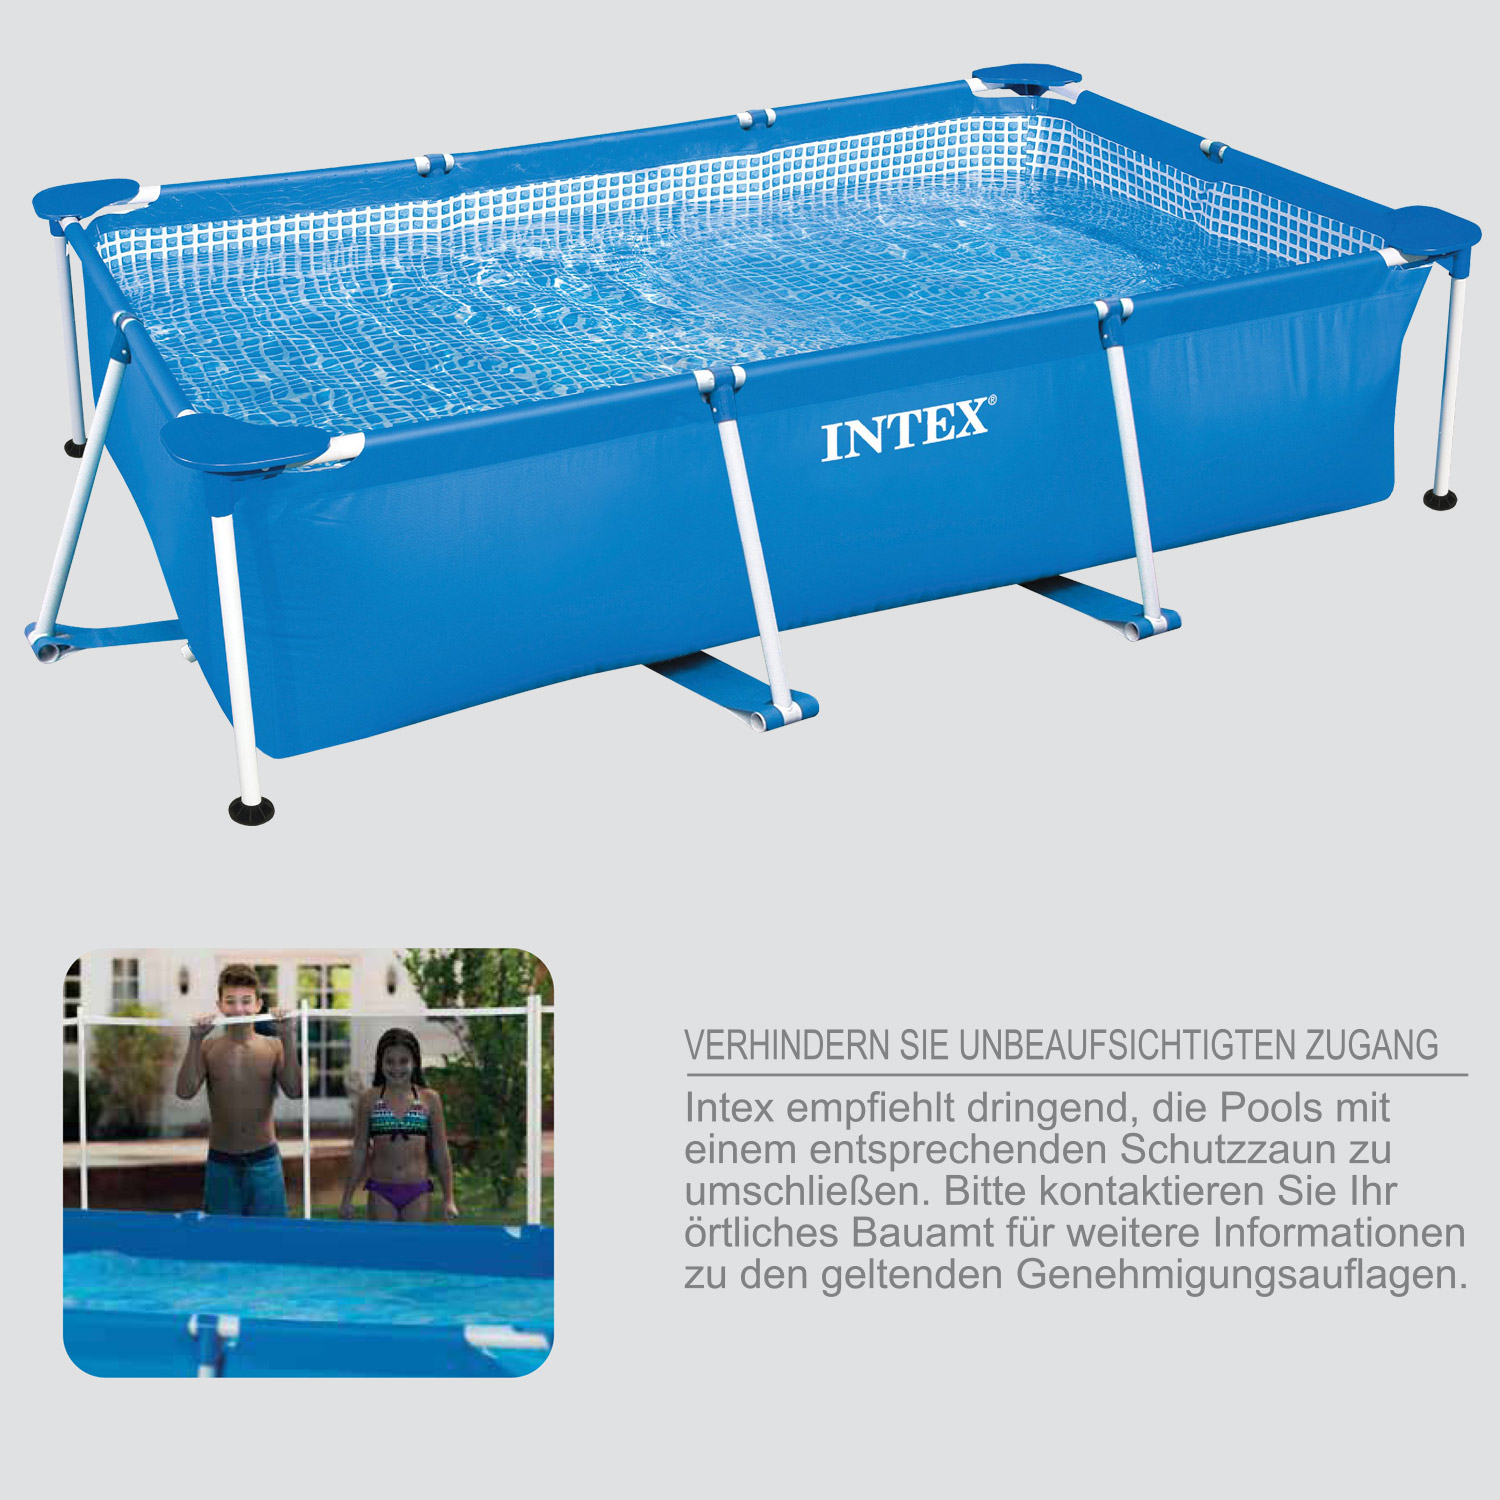 Intex 300x200x75 cm swimming pool mit sandfilter for Pool 457x122 mit sandfilteranlage